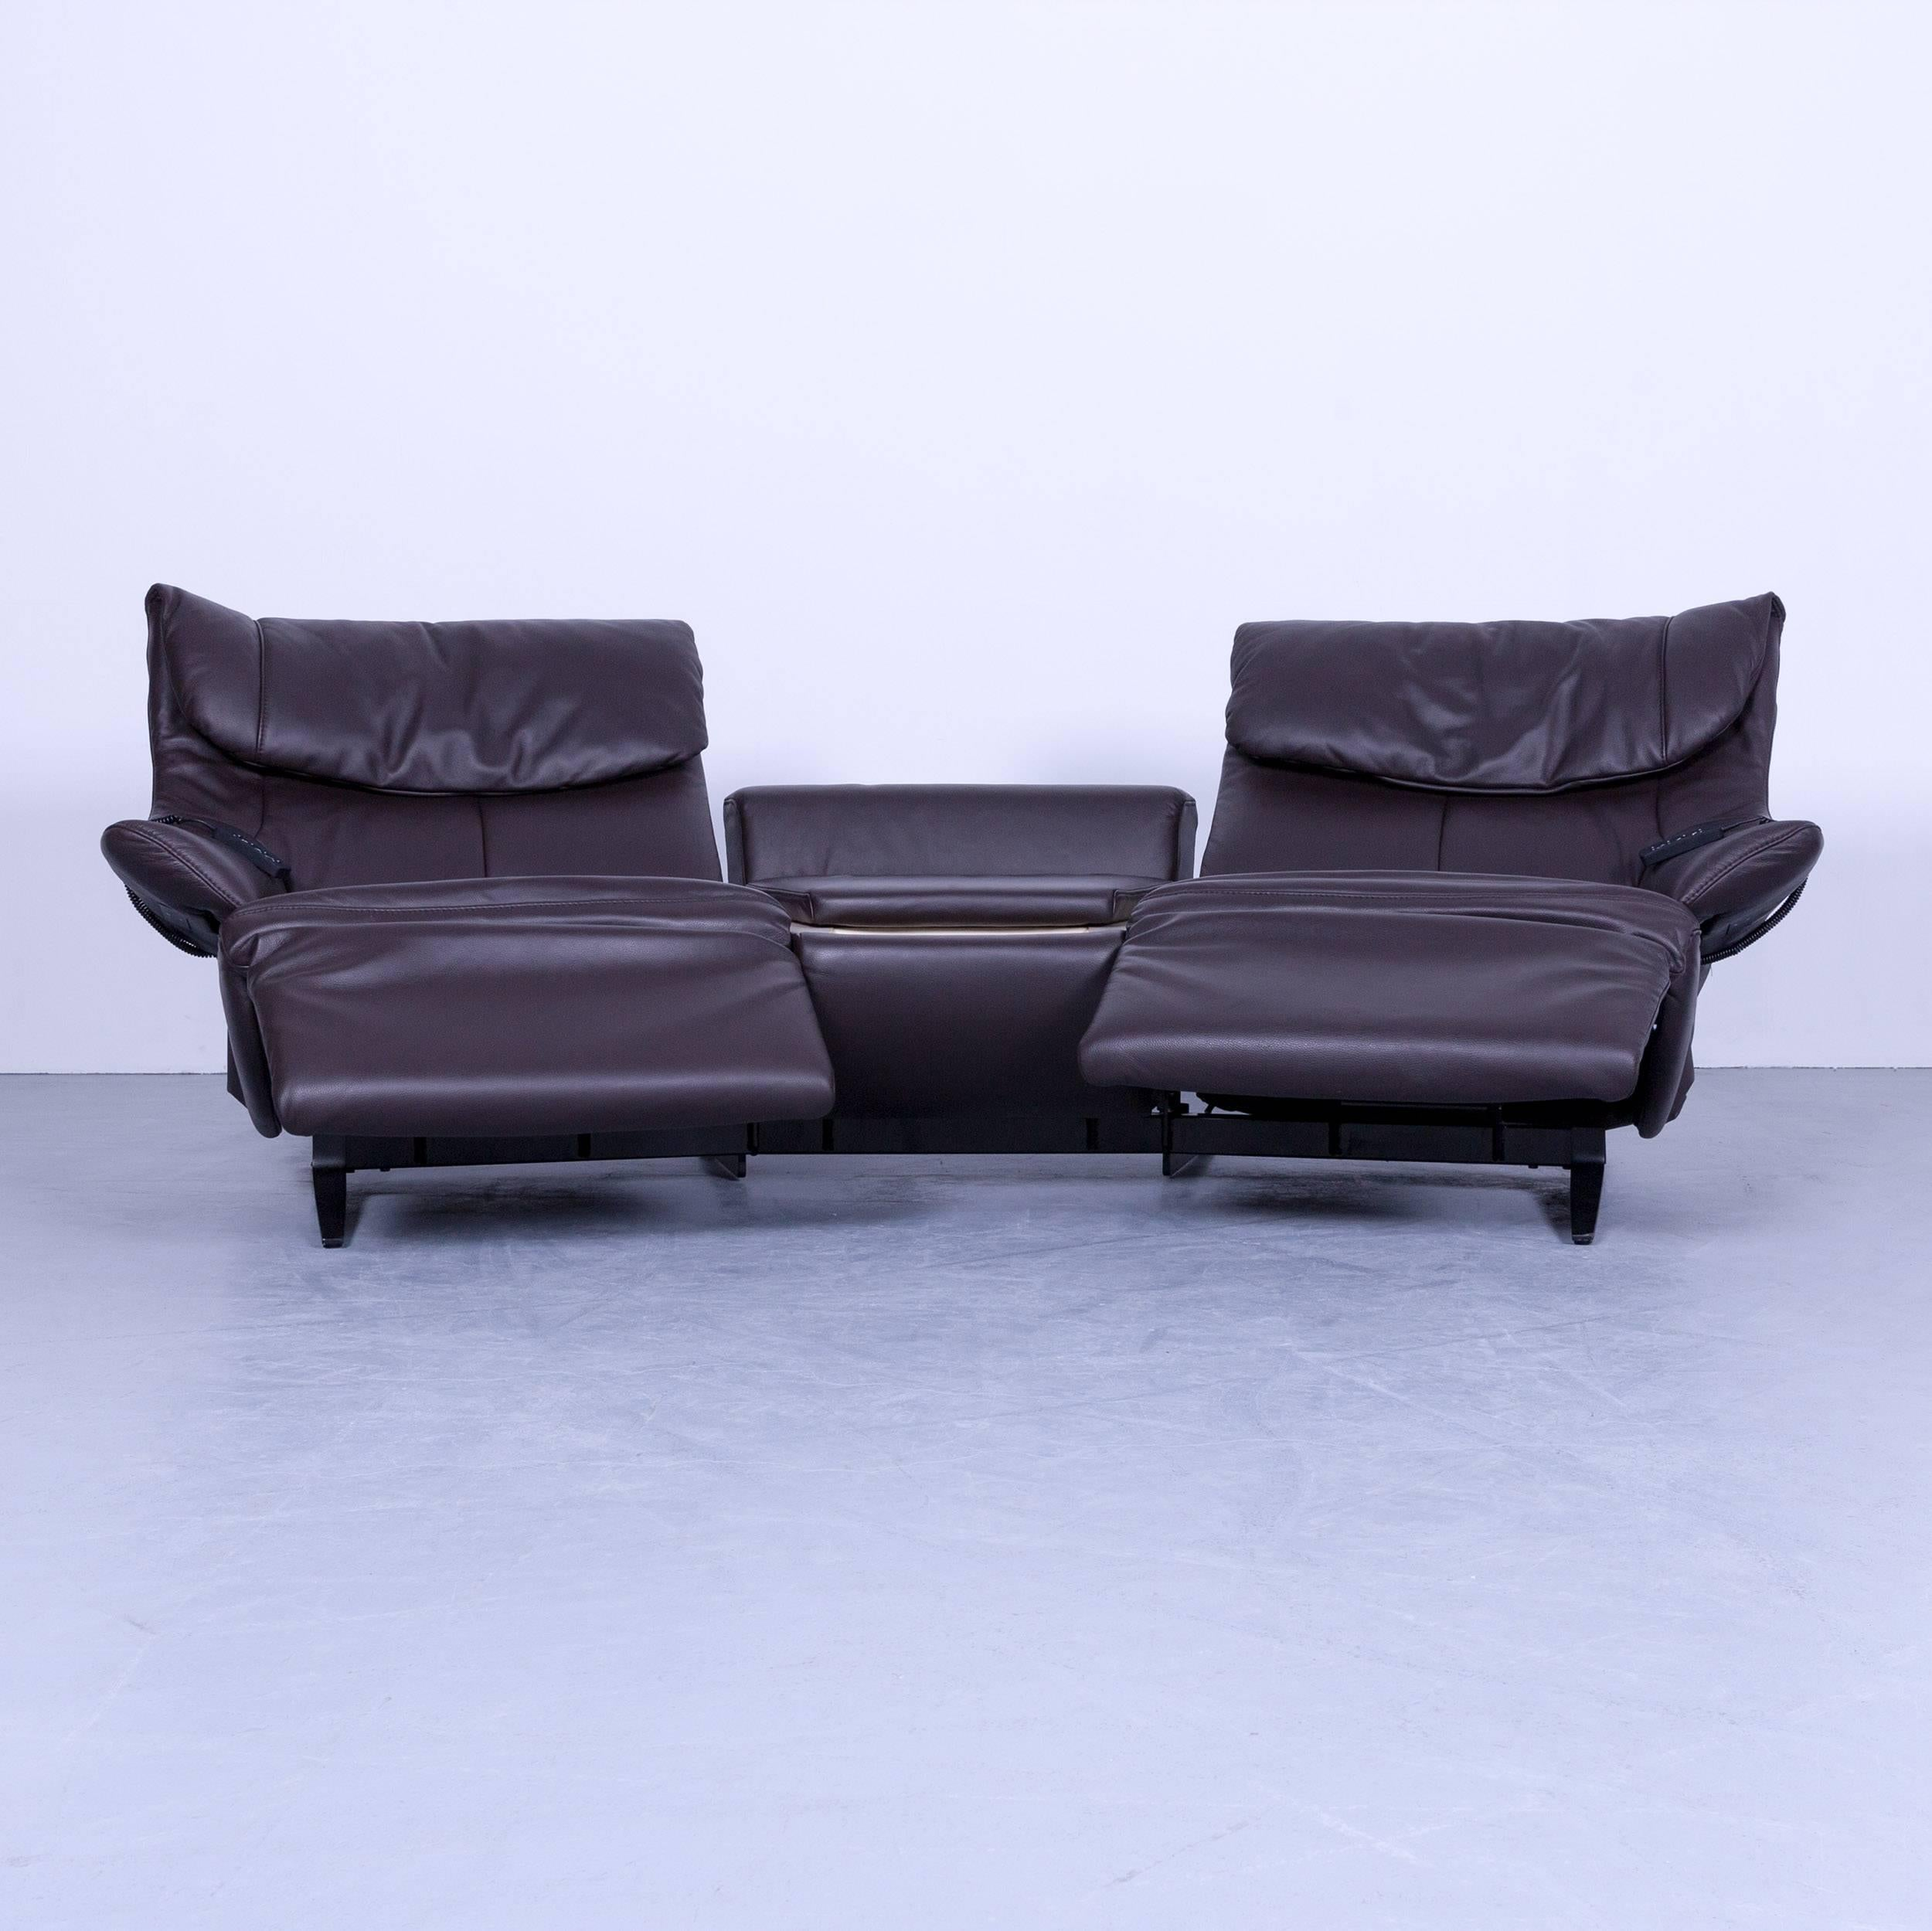 Himolla Designer Sofa Leather Brown Two Seat Trapez Couch Germany, In A  Minimalistic And